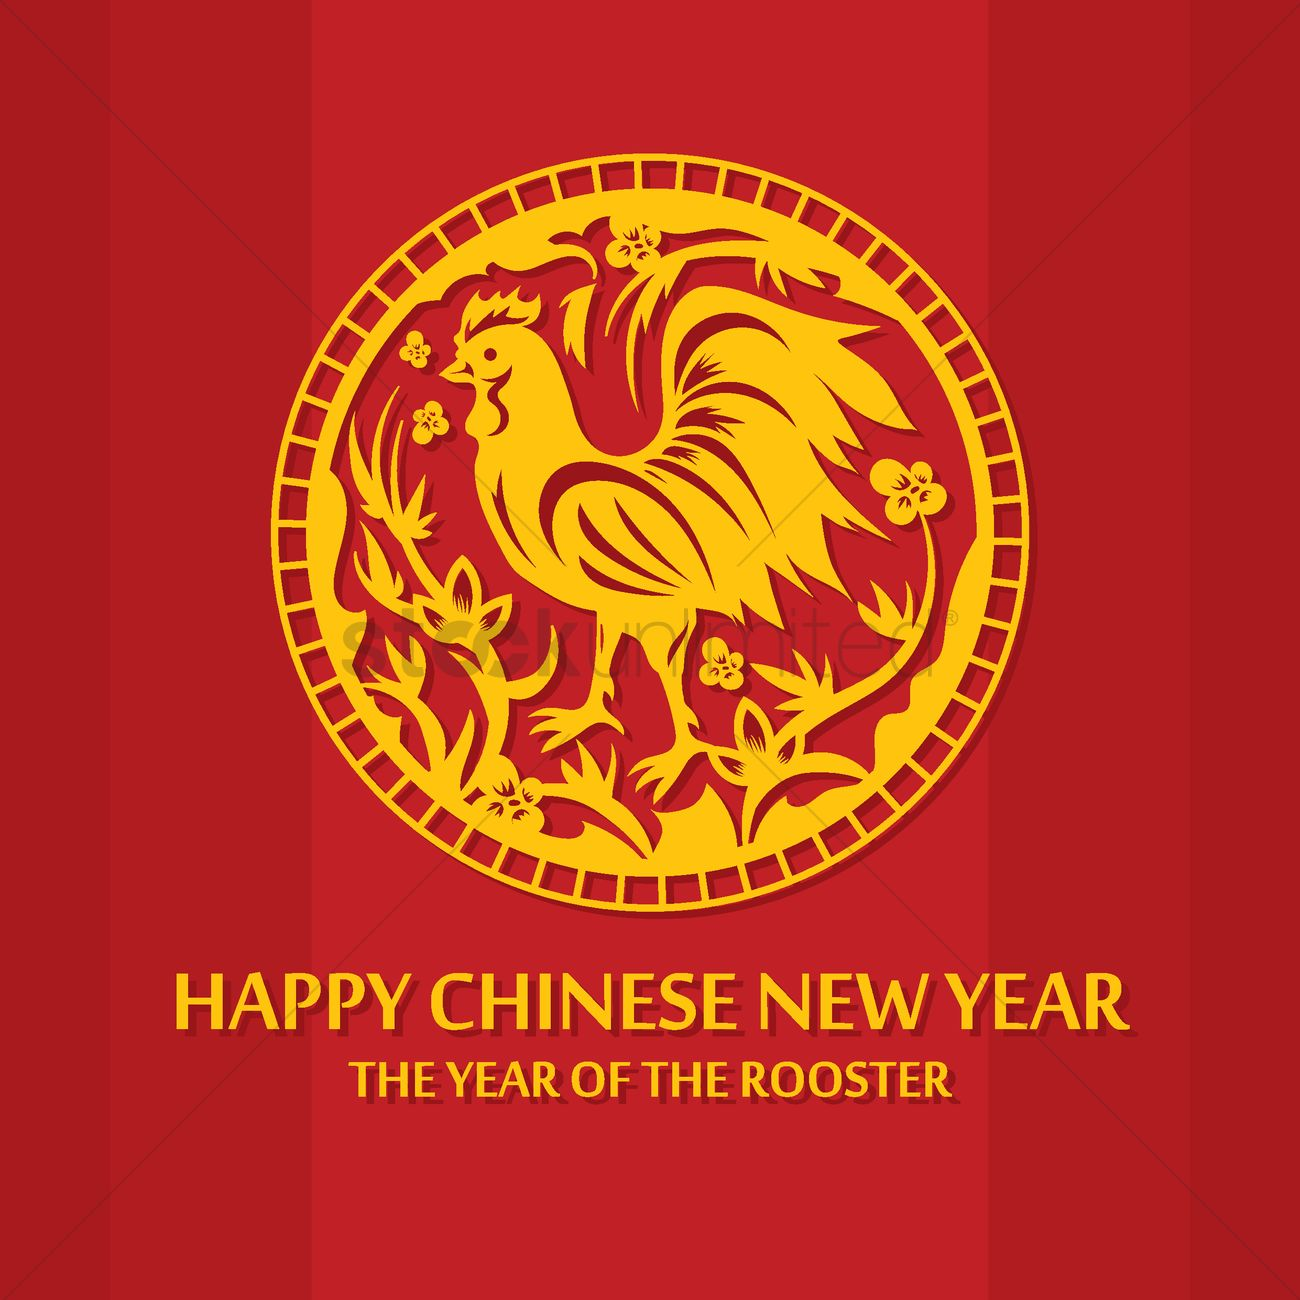 Happy Chinese New Year Greeting Vector Image 1978950 Stockunlimited